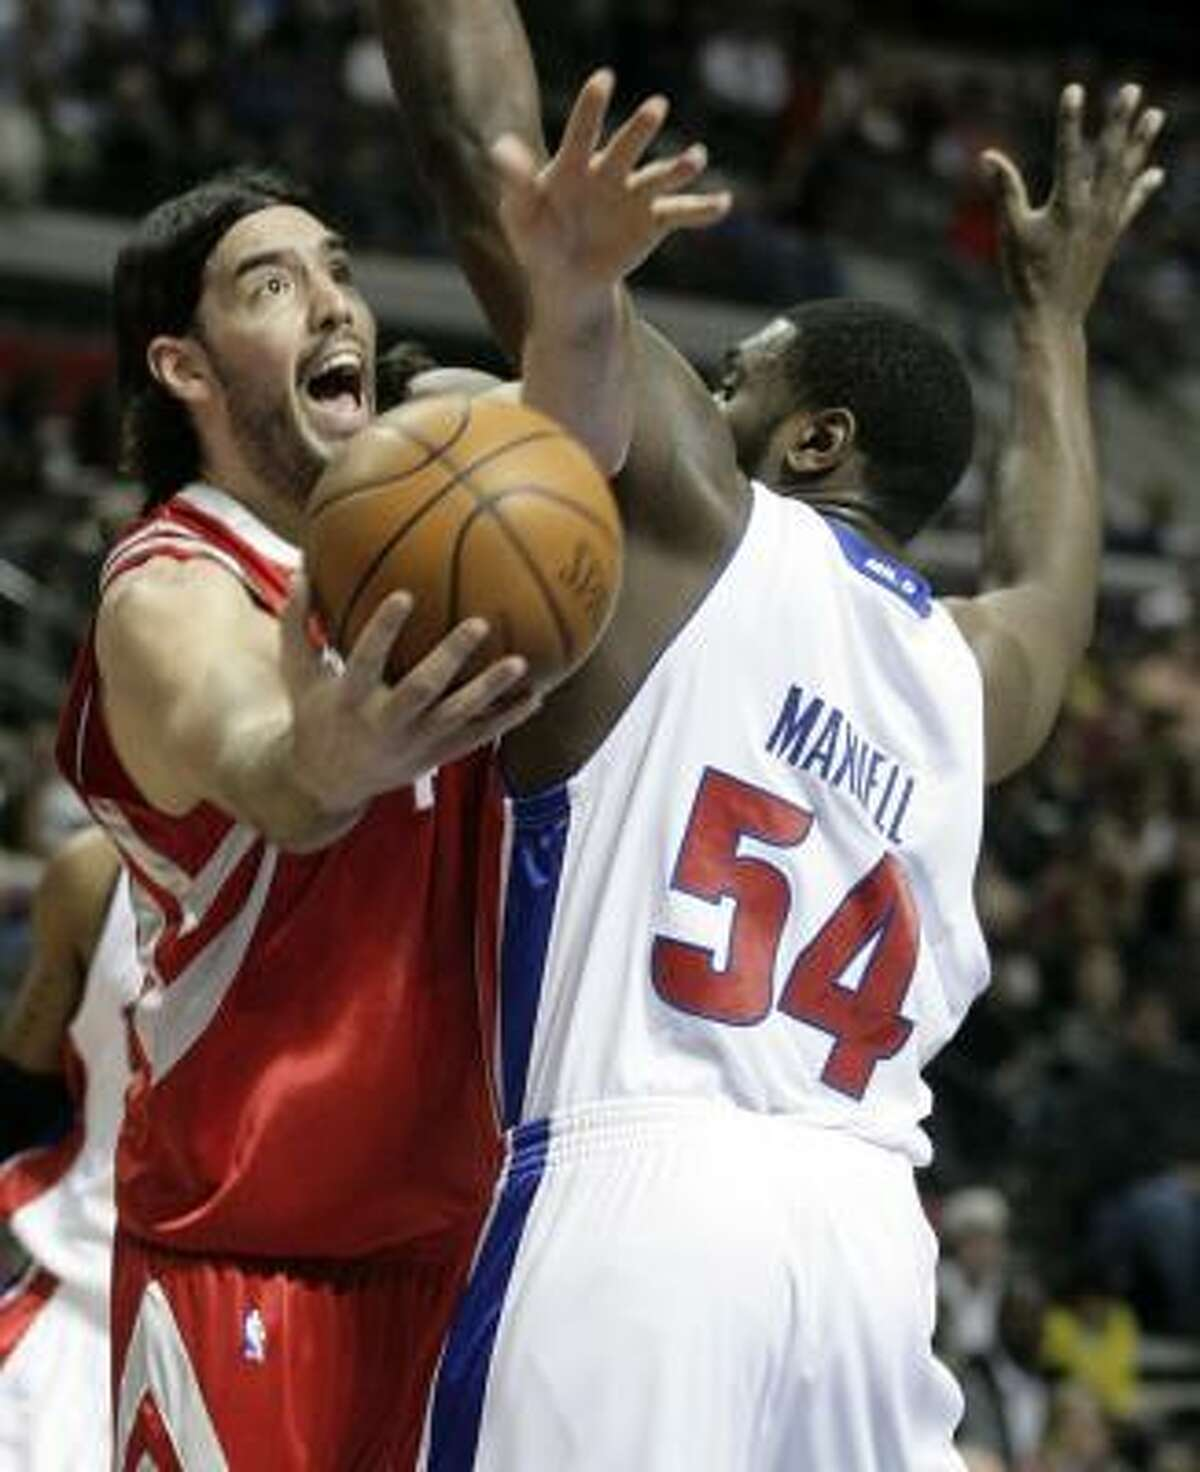 Rockets' Luis Scola, left, takes a shot around Detroit Pistons' Jason Maxiell (54) in the first half. Scola had a team high 15 rebounds and added 20 points.